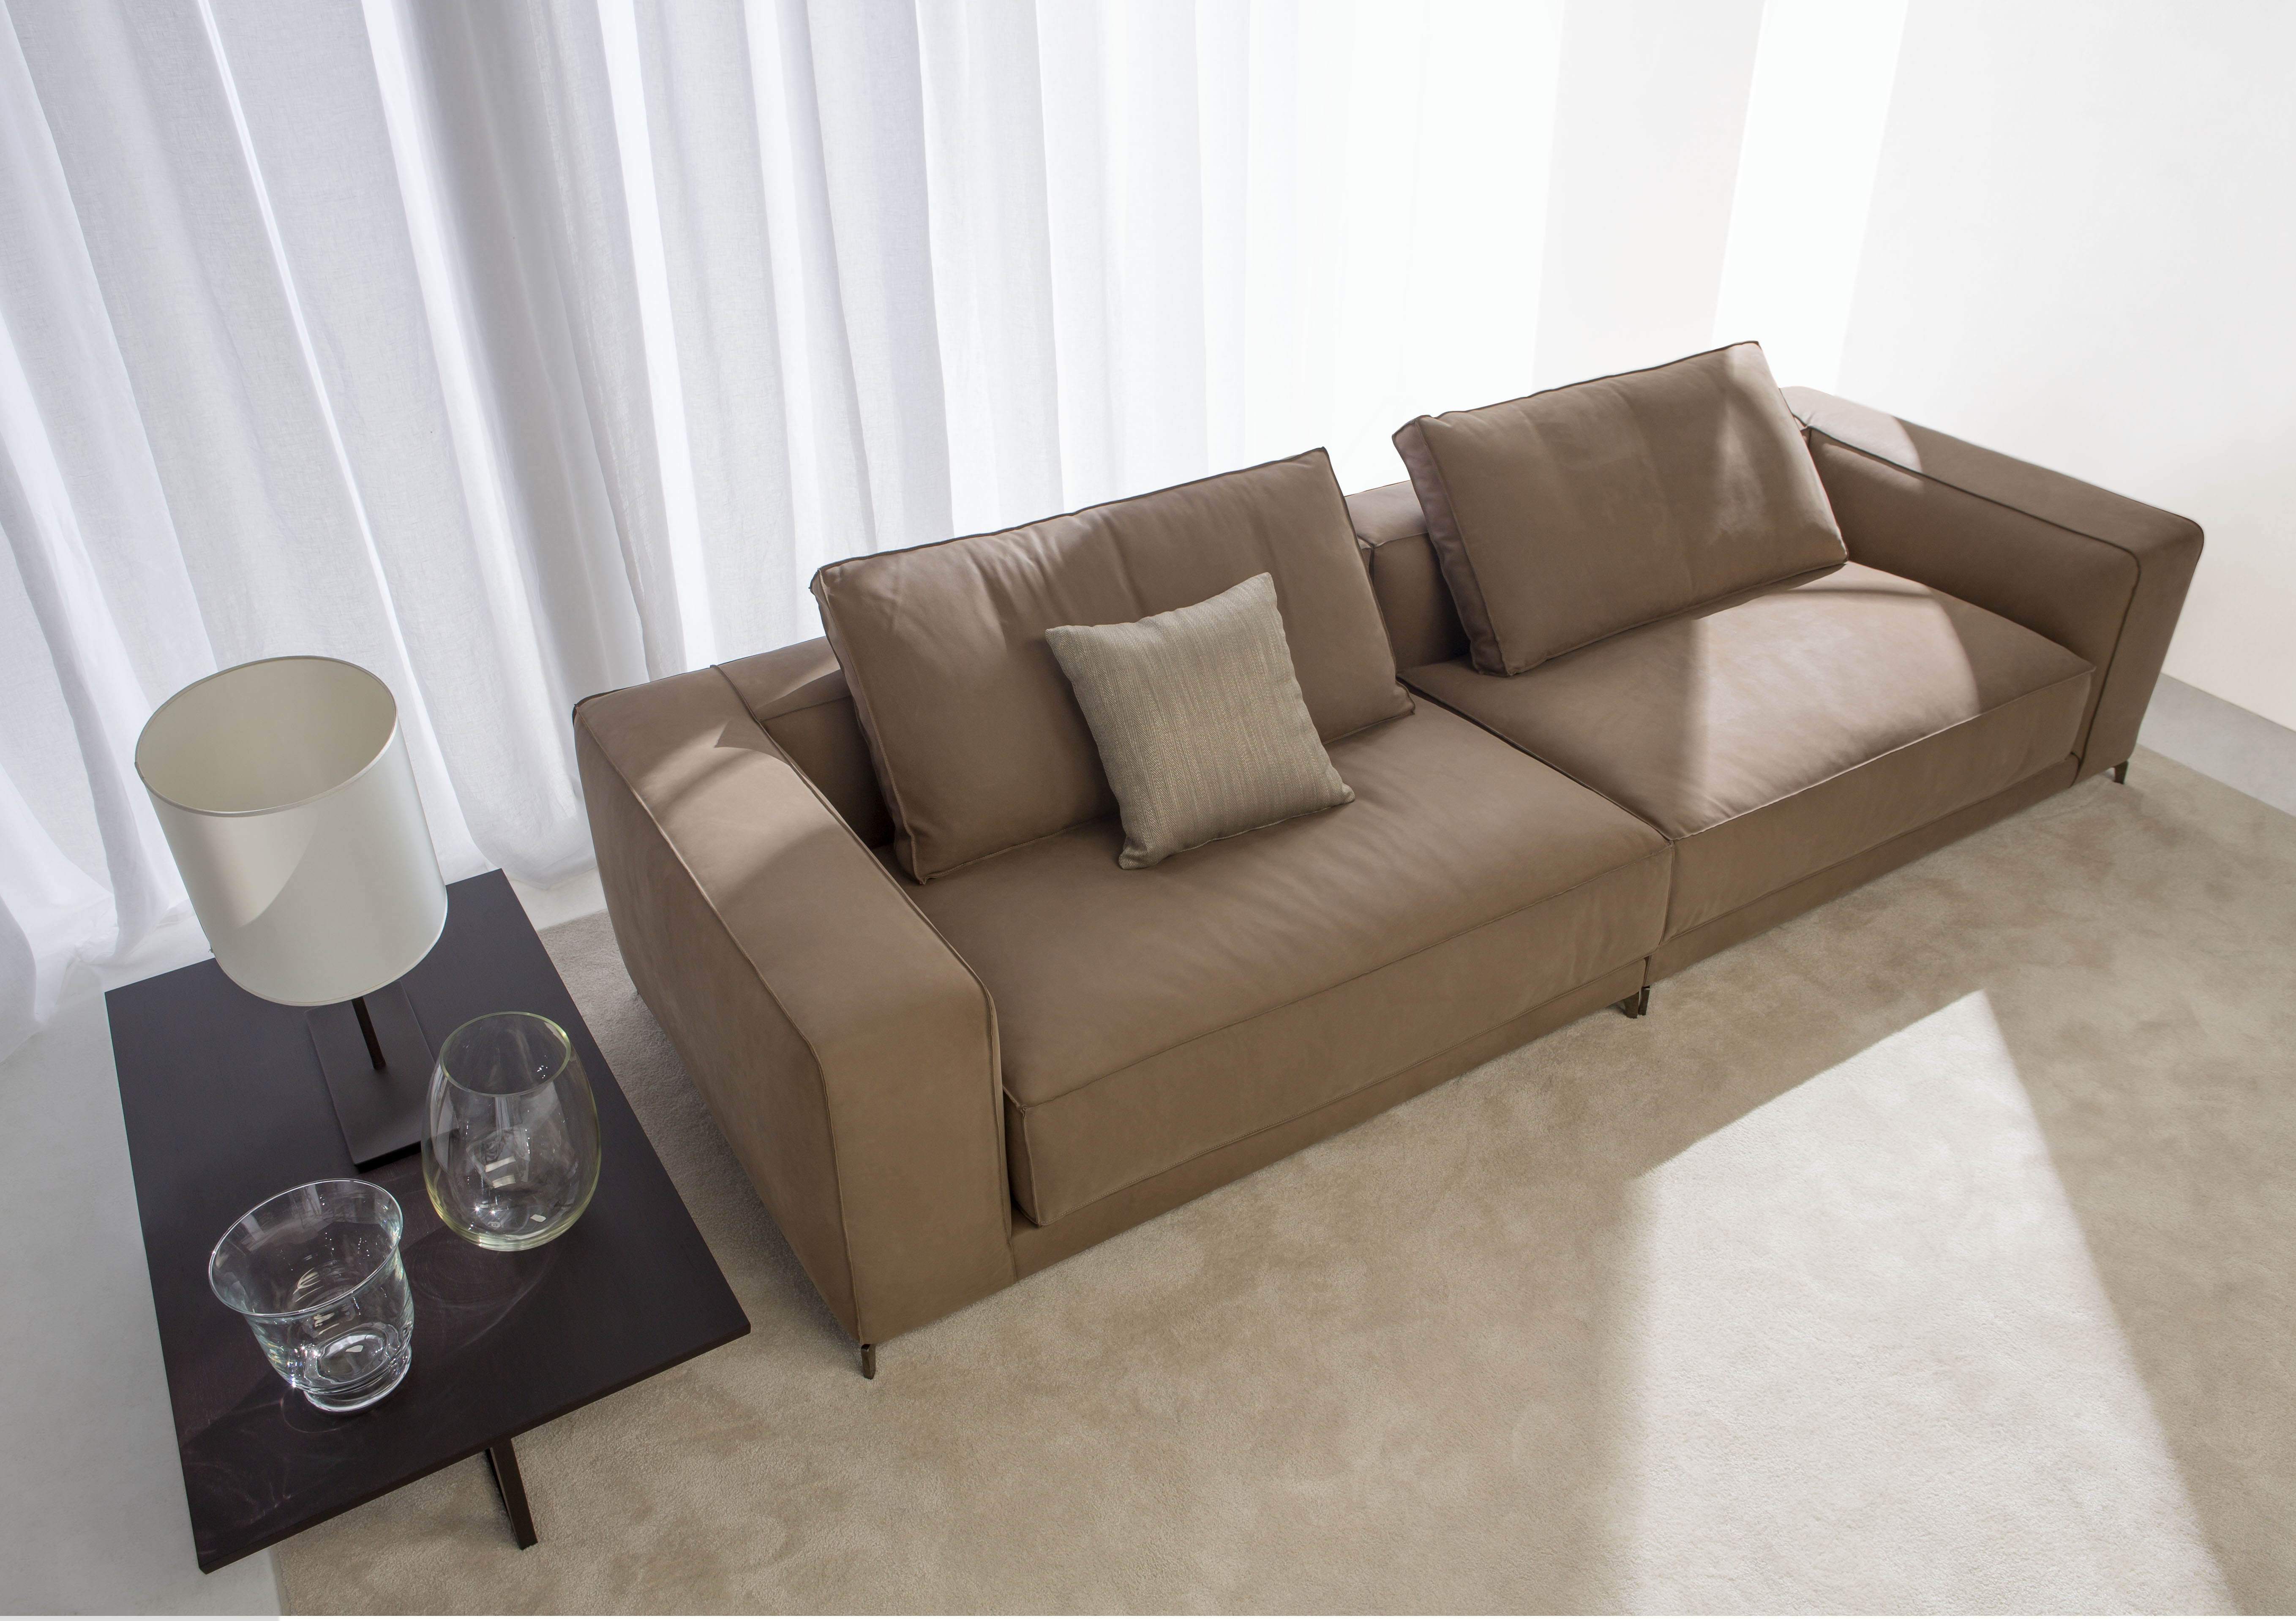 christian-full-grain-leather-sofa